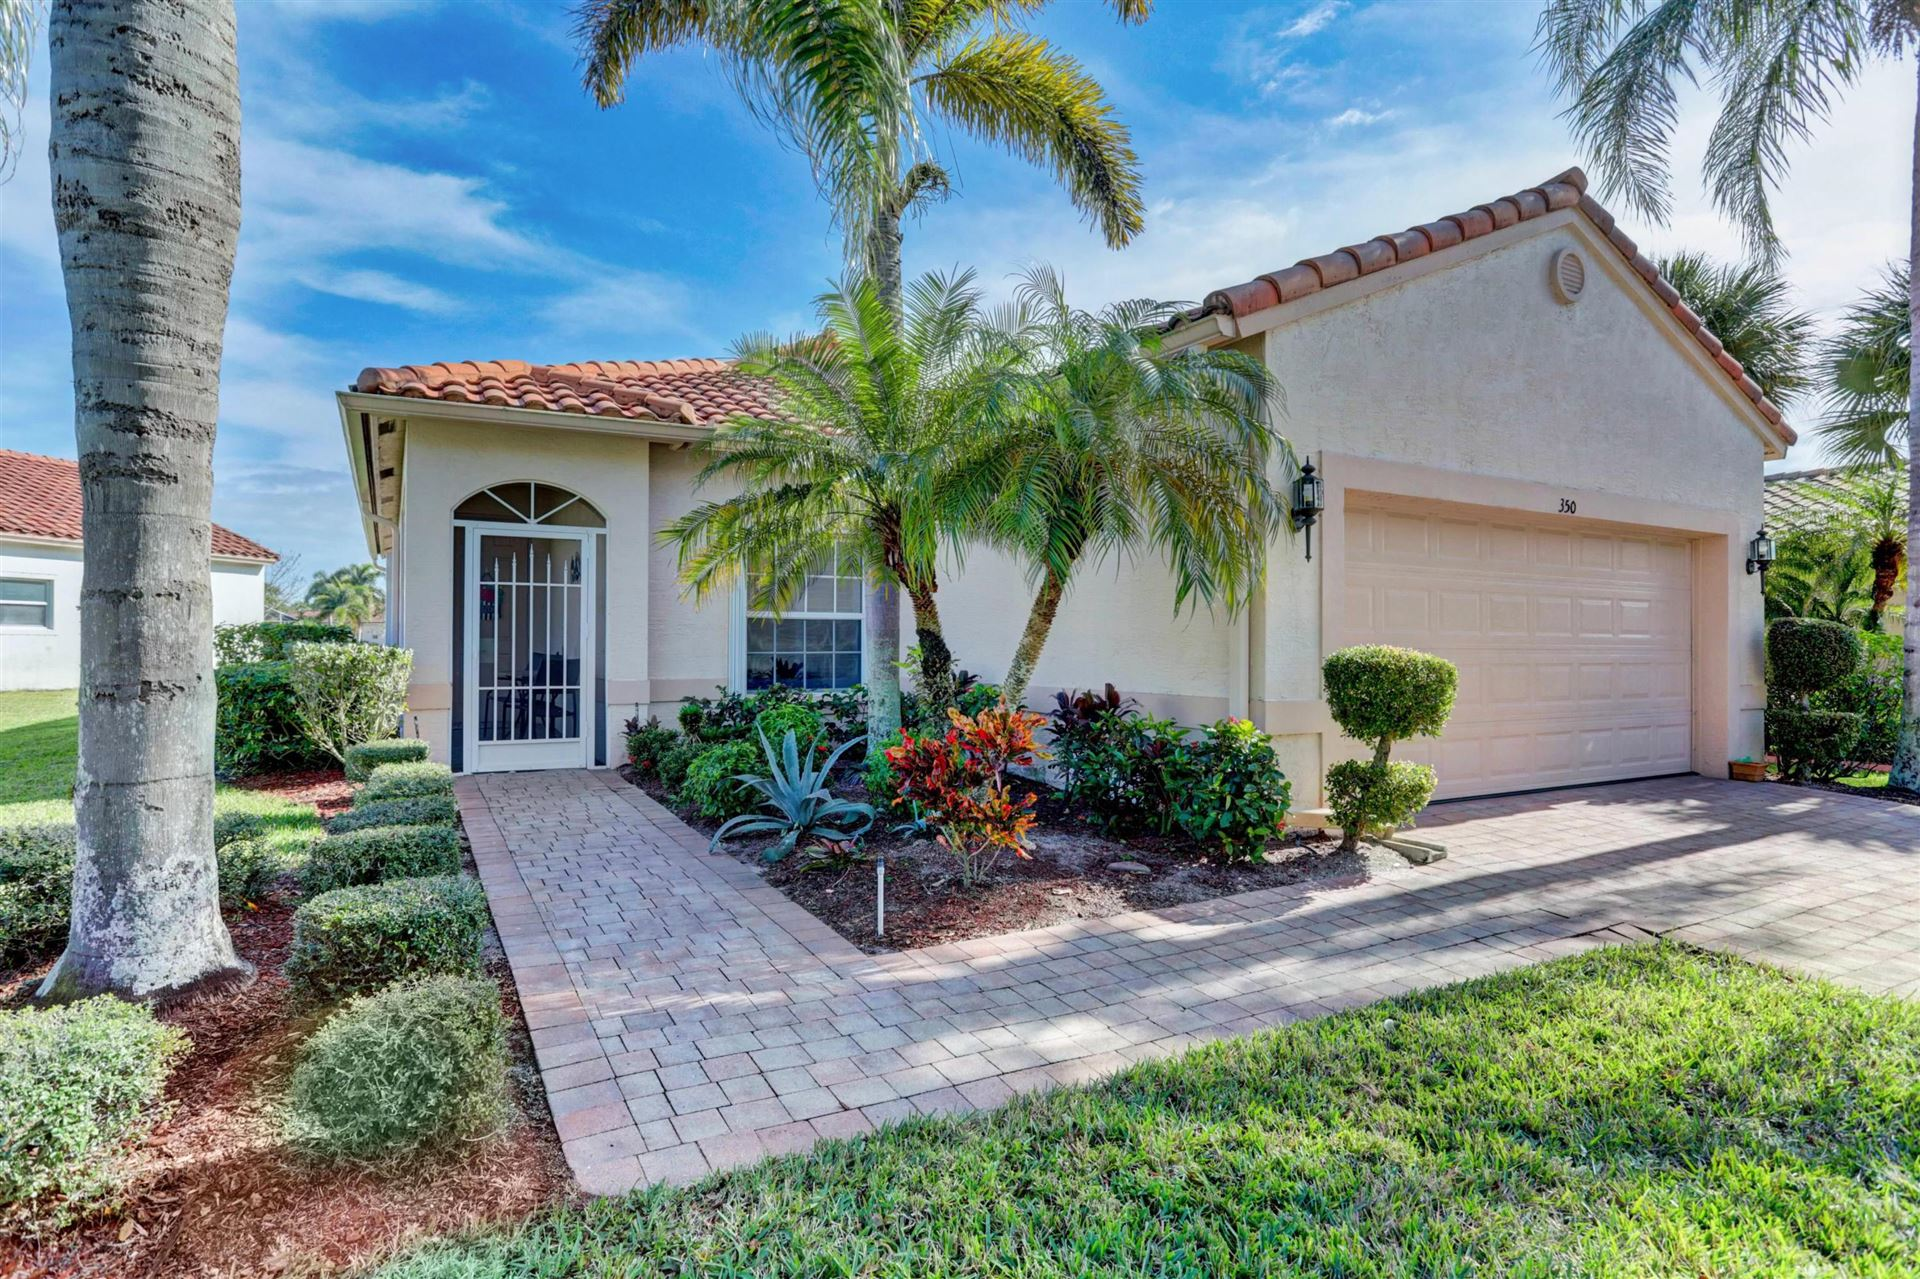 Photo of 350 NW Breezy Point Loop, Port Saint Lucie, FL 34986 (MLS # RX-10684773)